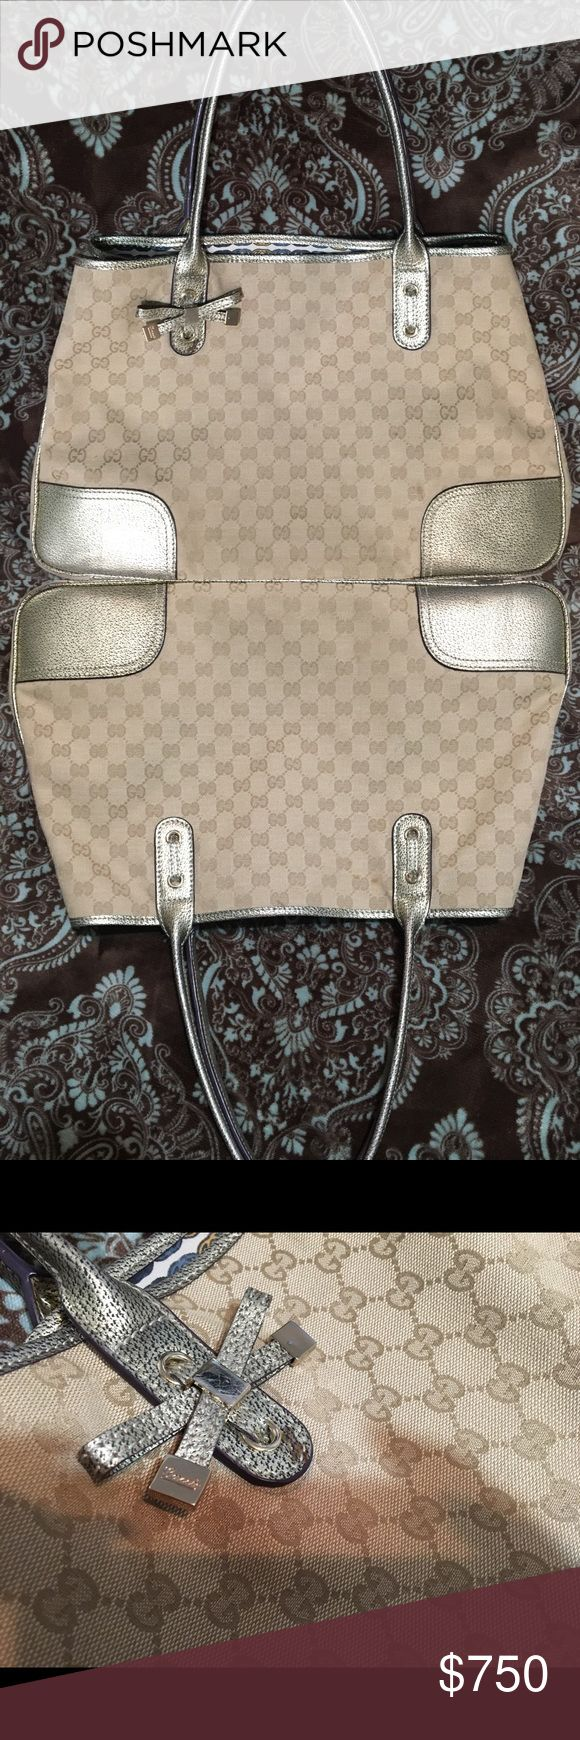 """GUCCI Princy Large Sized Tote in gold canvas bow This is one of my all time favorite bags love it and she's still in such amazing shape! Condition is well defined in pics there's a small spotted stain on the gold bow that I cannot recall what from :/ other than that she looks fabulous! 11""""18""""5.5""""and 9""""drop double handles, 4 metal feet model numbers hard to make out but it's 161719 Gucci Bags Totes"""